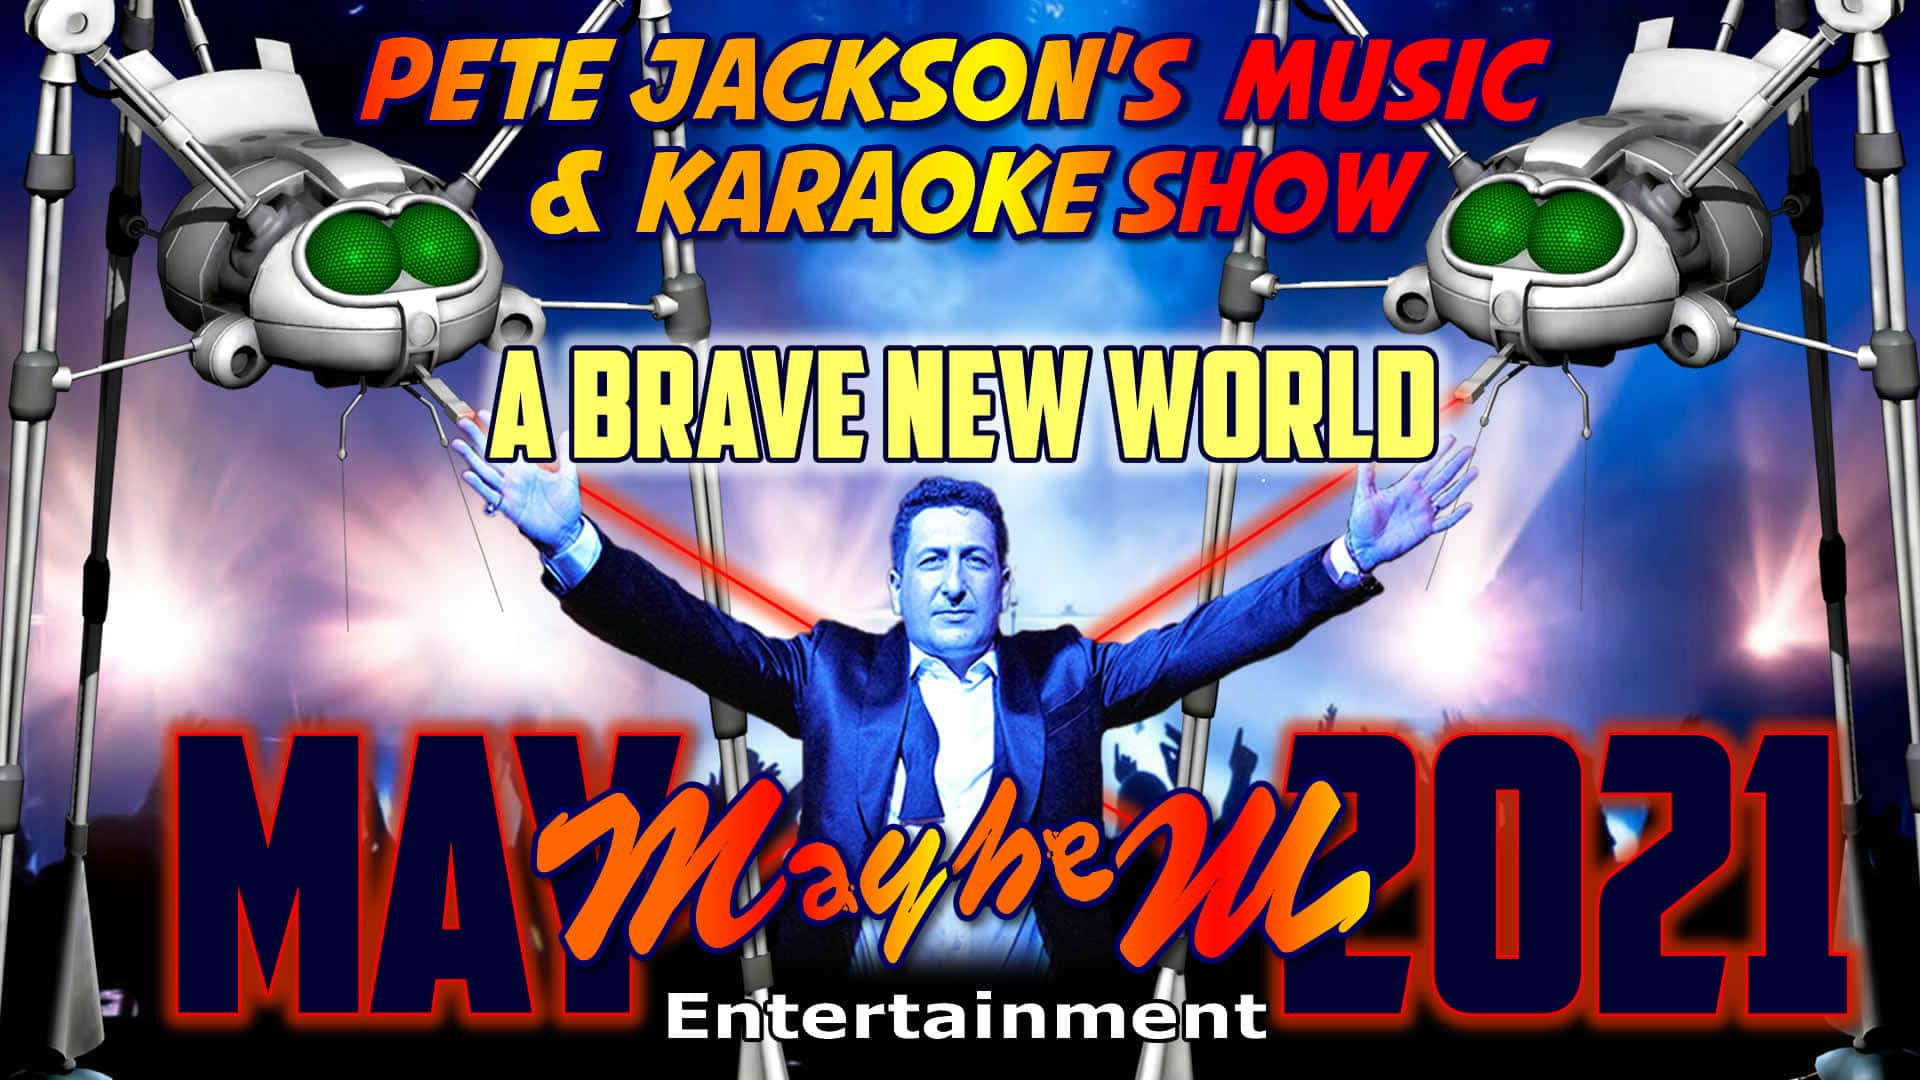 Pete Jackson's Music Show 2021 A Brave New World